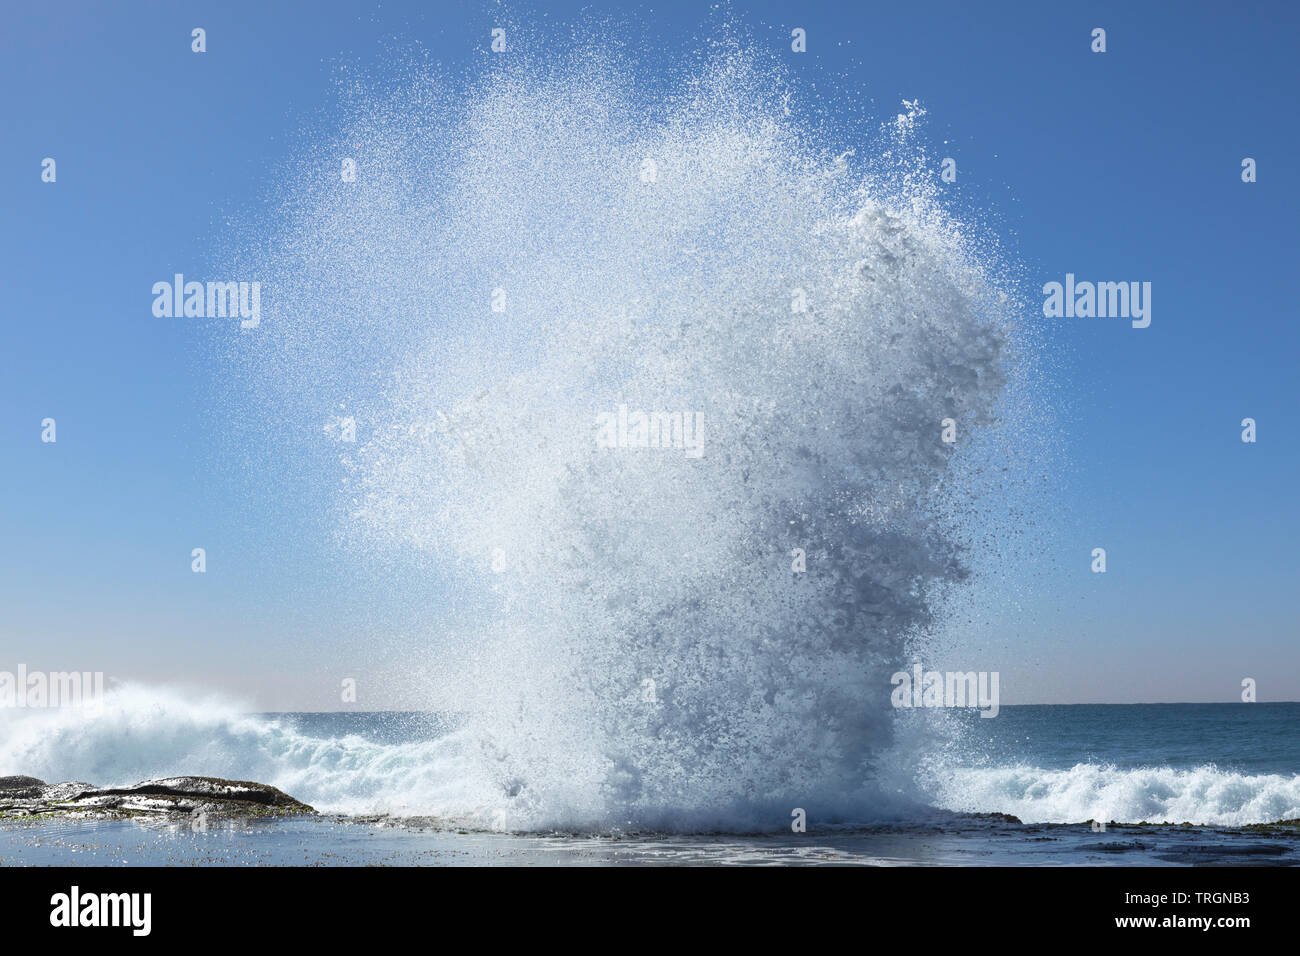 Australia, NSW, Yamba, a large wave action forming - Stock Image